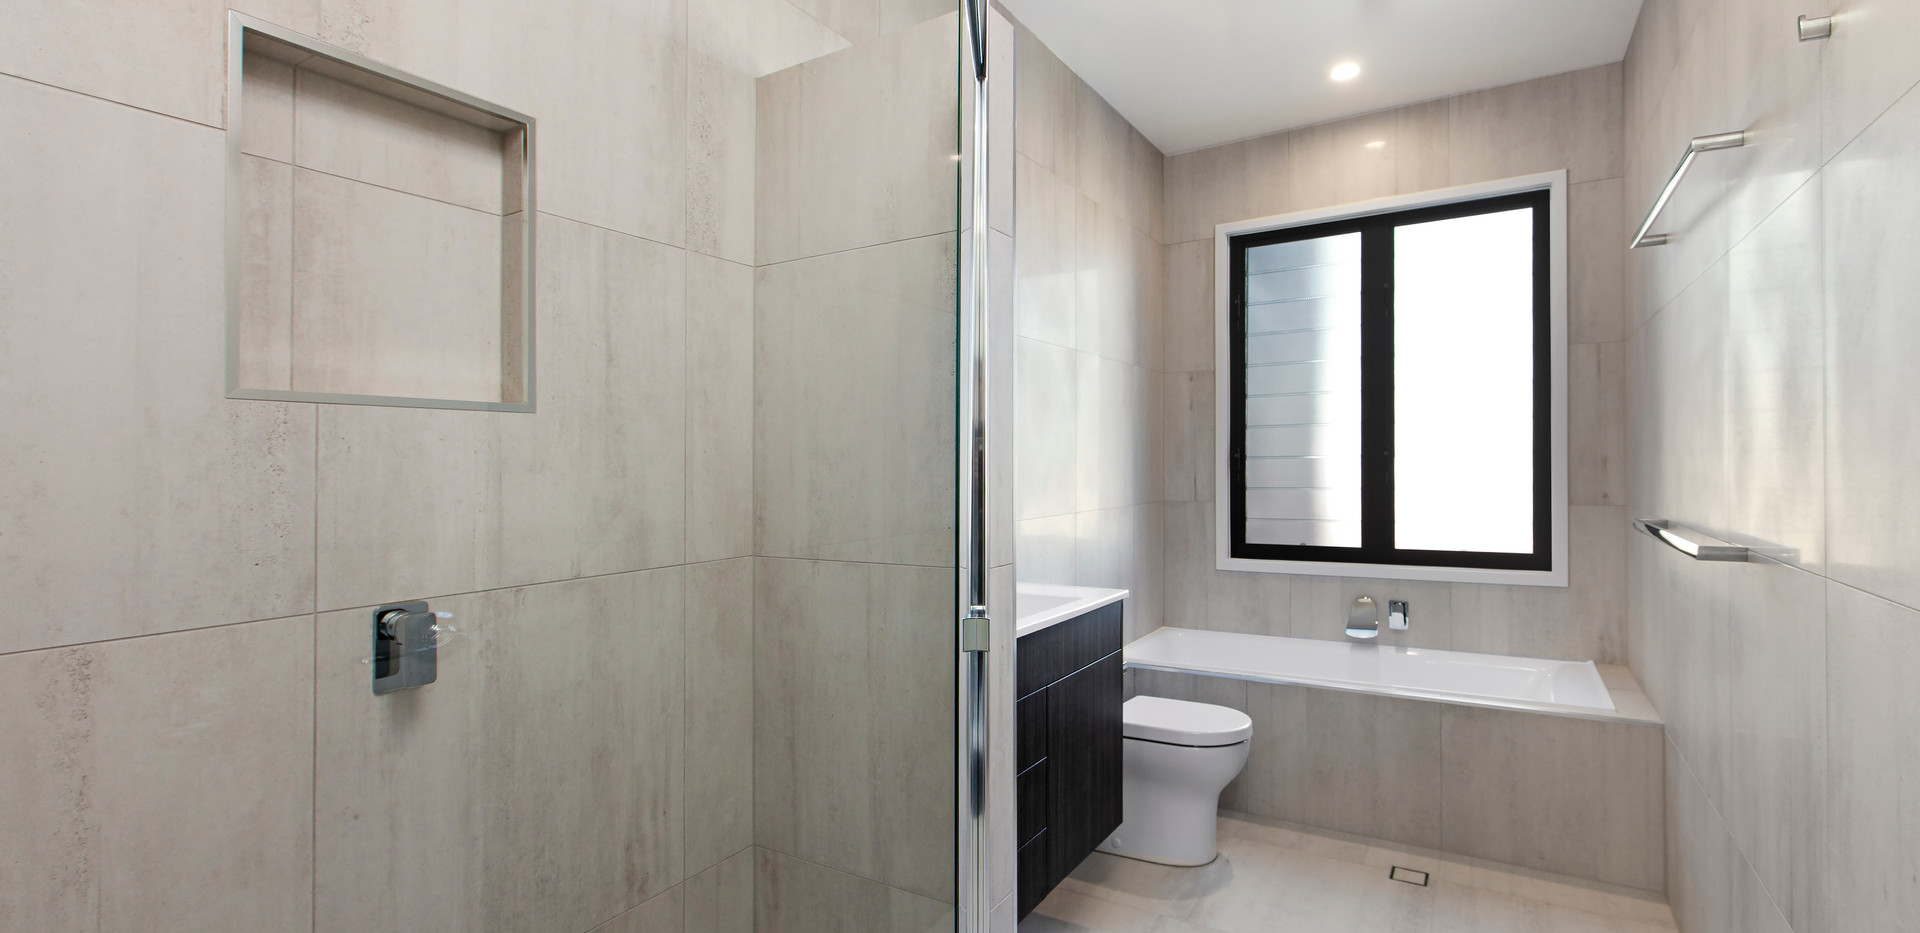 24_3 Great Keppel Cres Brightwater_Duple